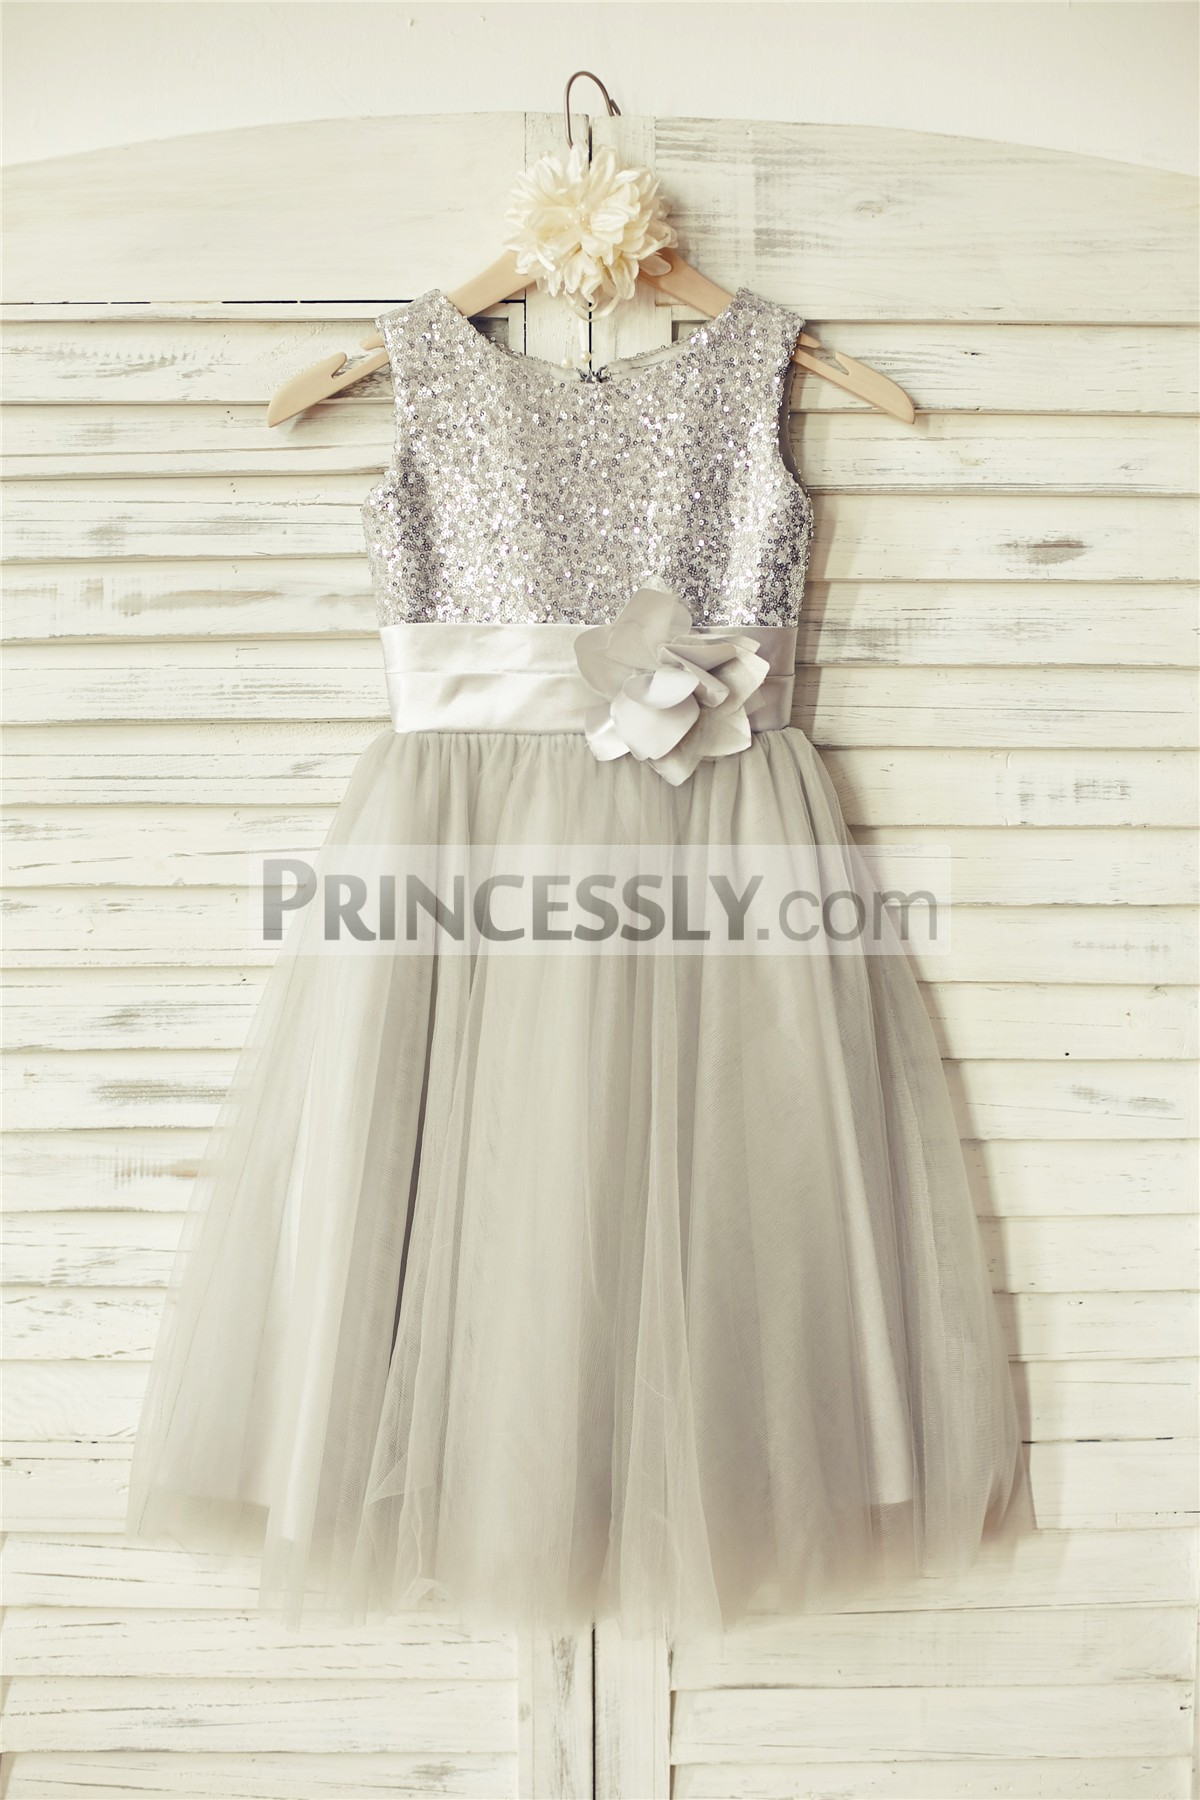 Silver Sequin Gray Tulle Flower Girl Dress With Belt